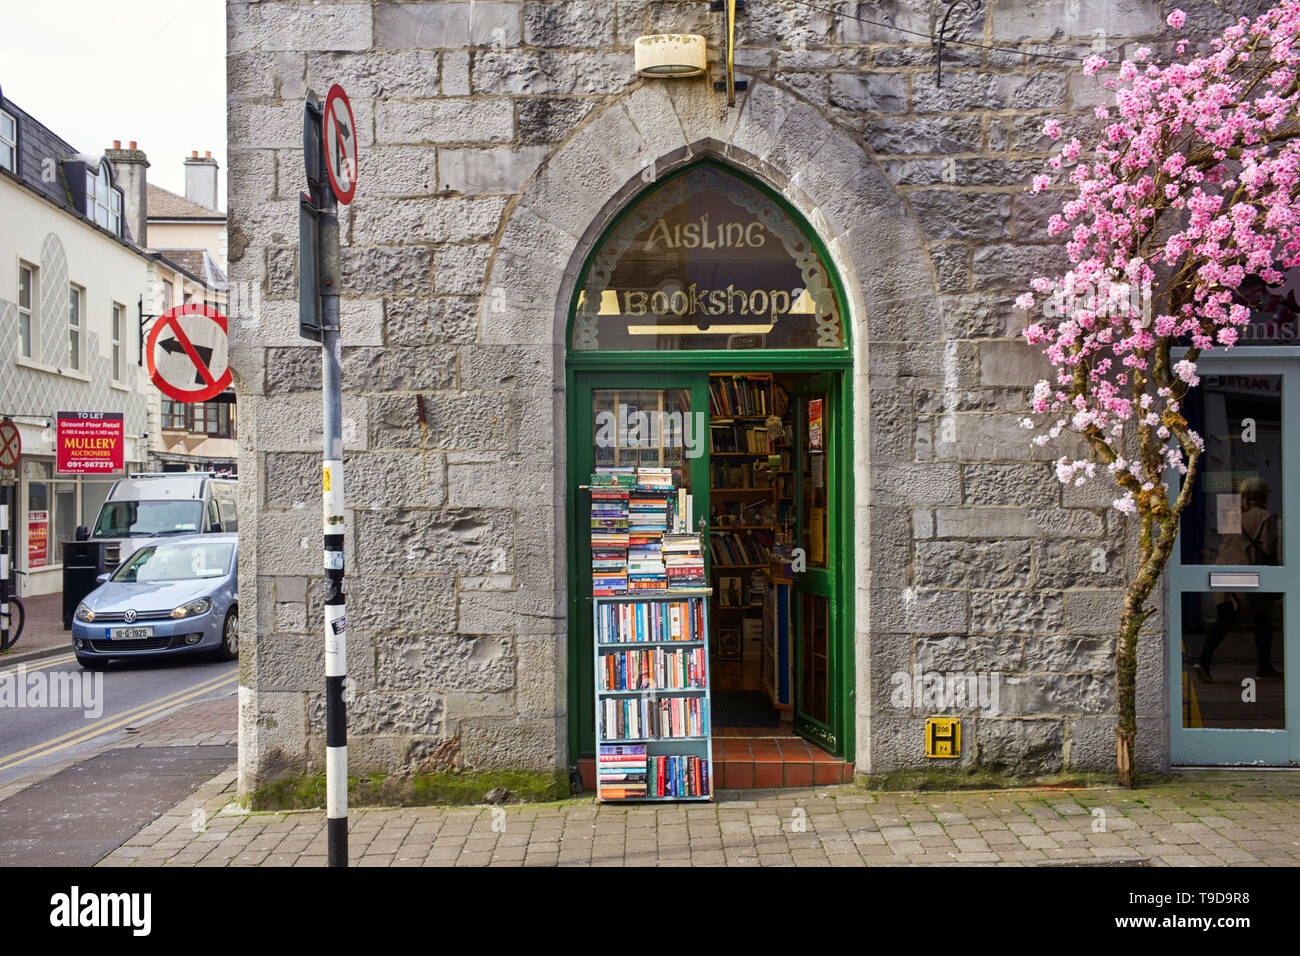 Aisling secondhand Bookshop in Galway, Ireland - Stock Image